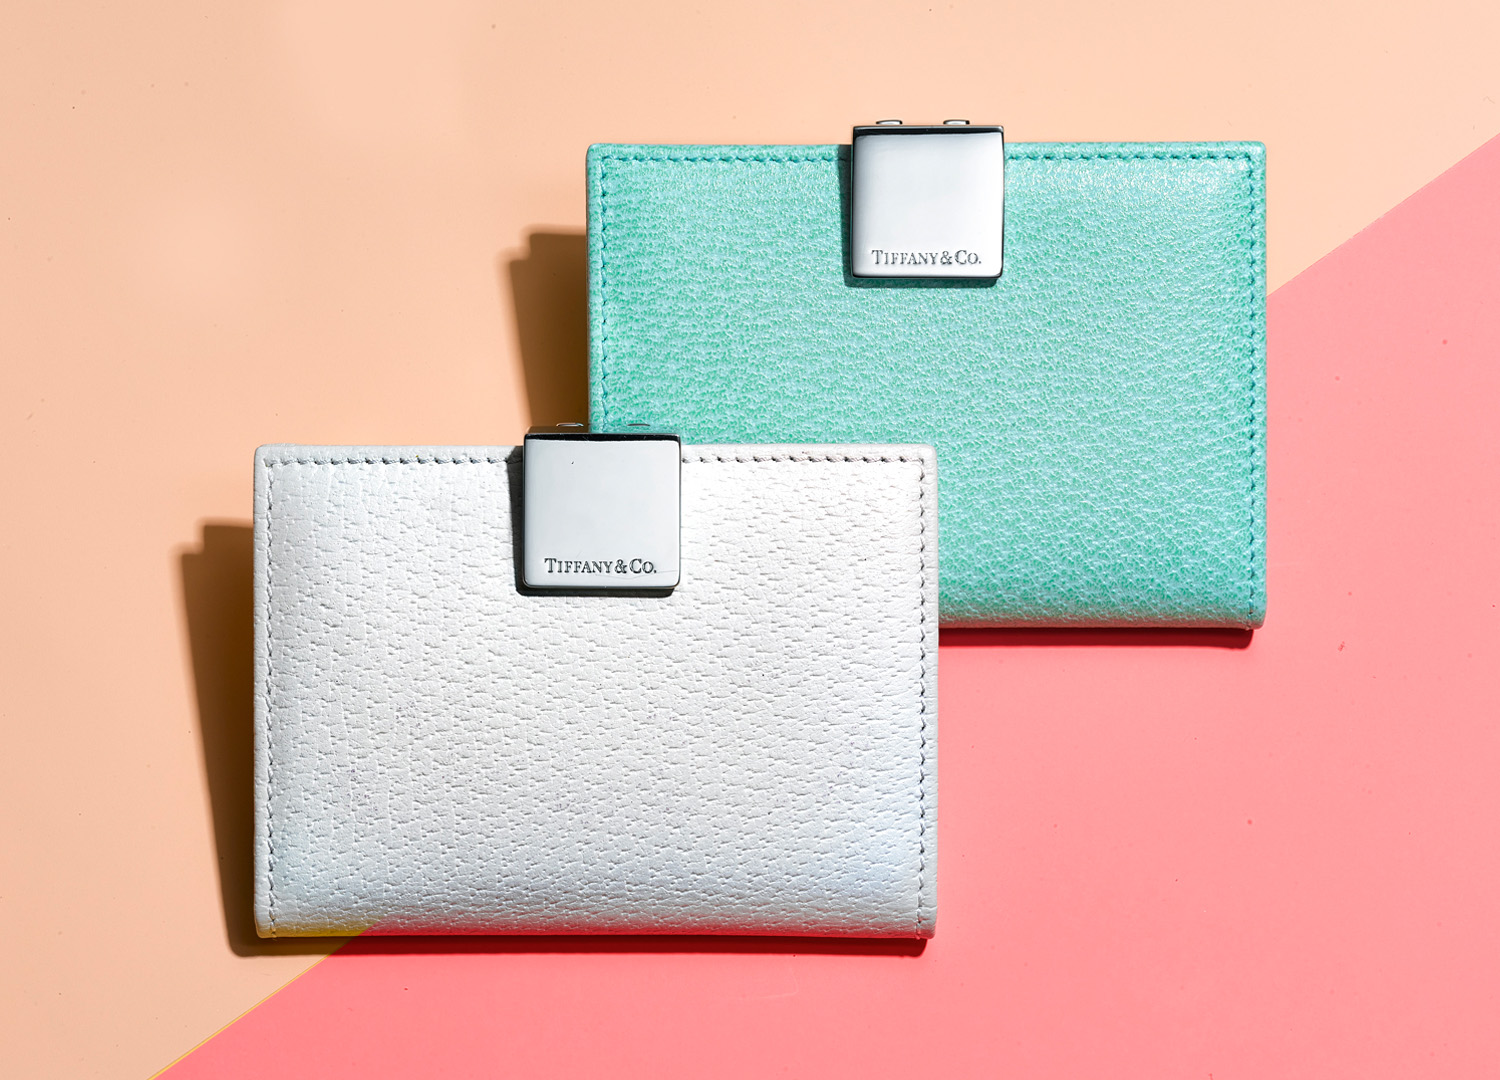 square_space_0002_3-8 Small Leather Goods Email_3_FPO.jpg